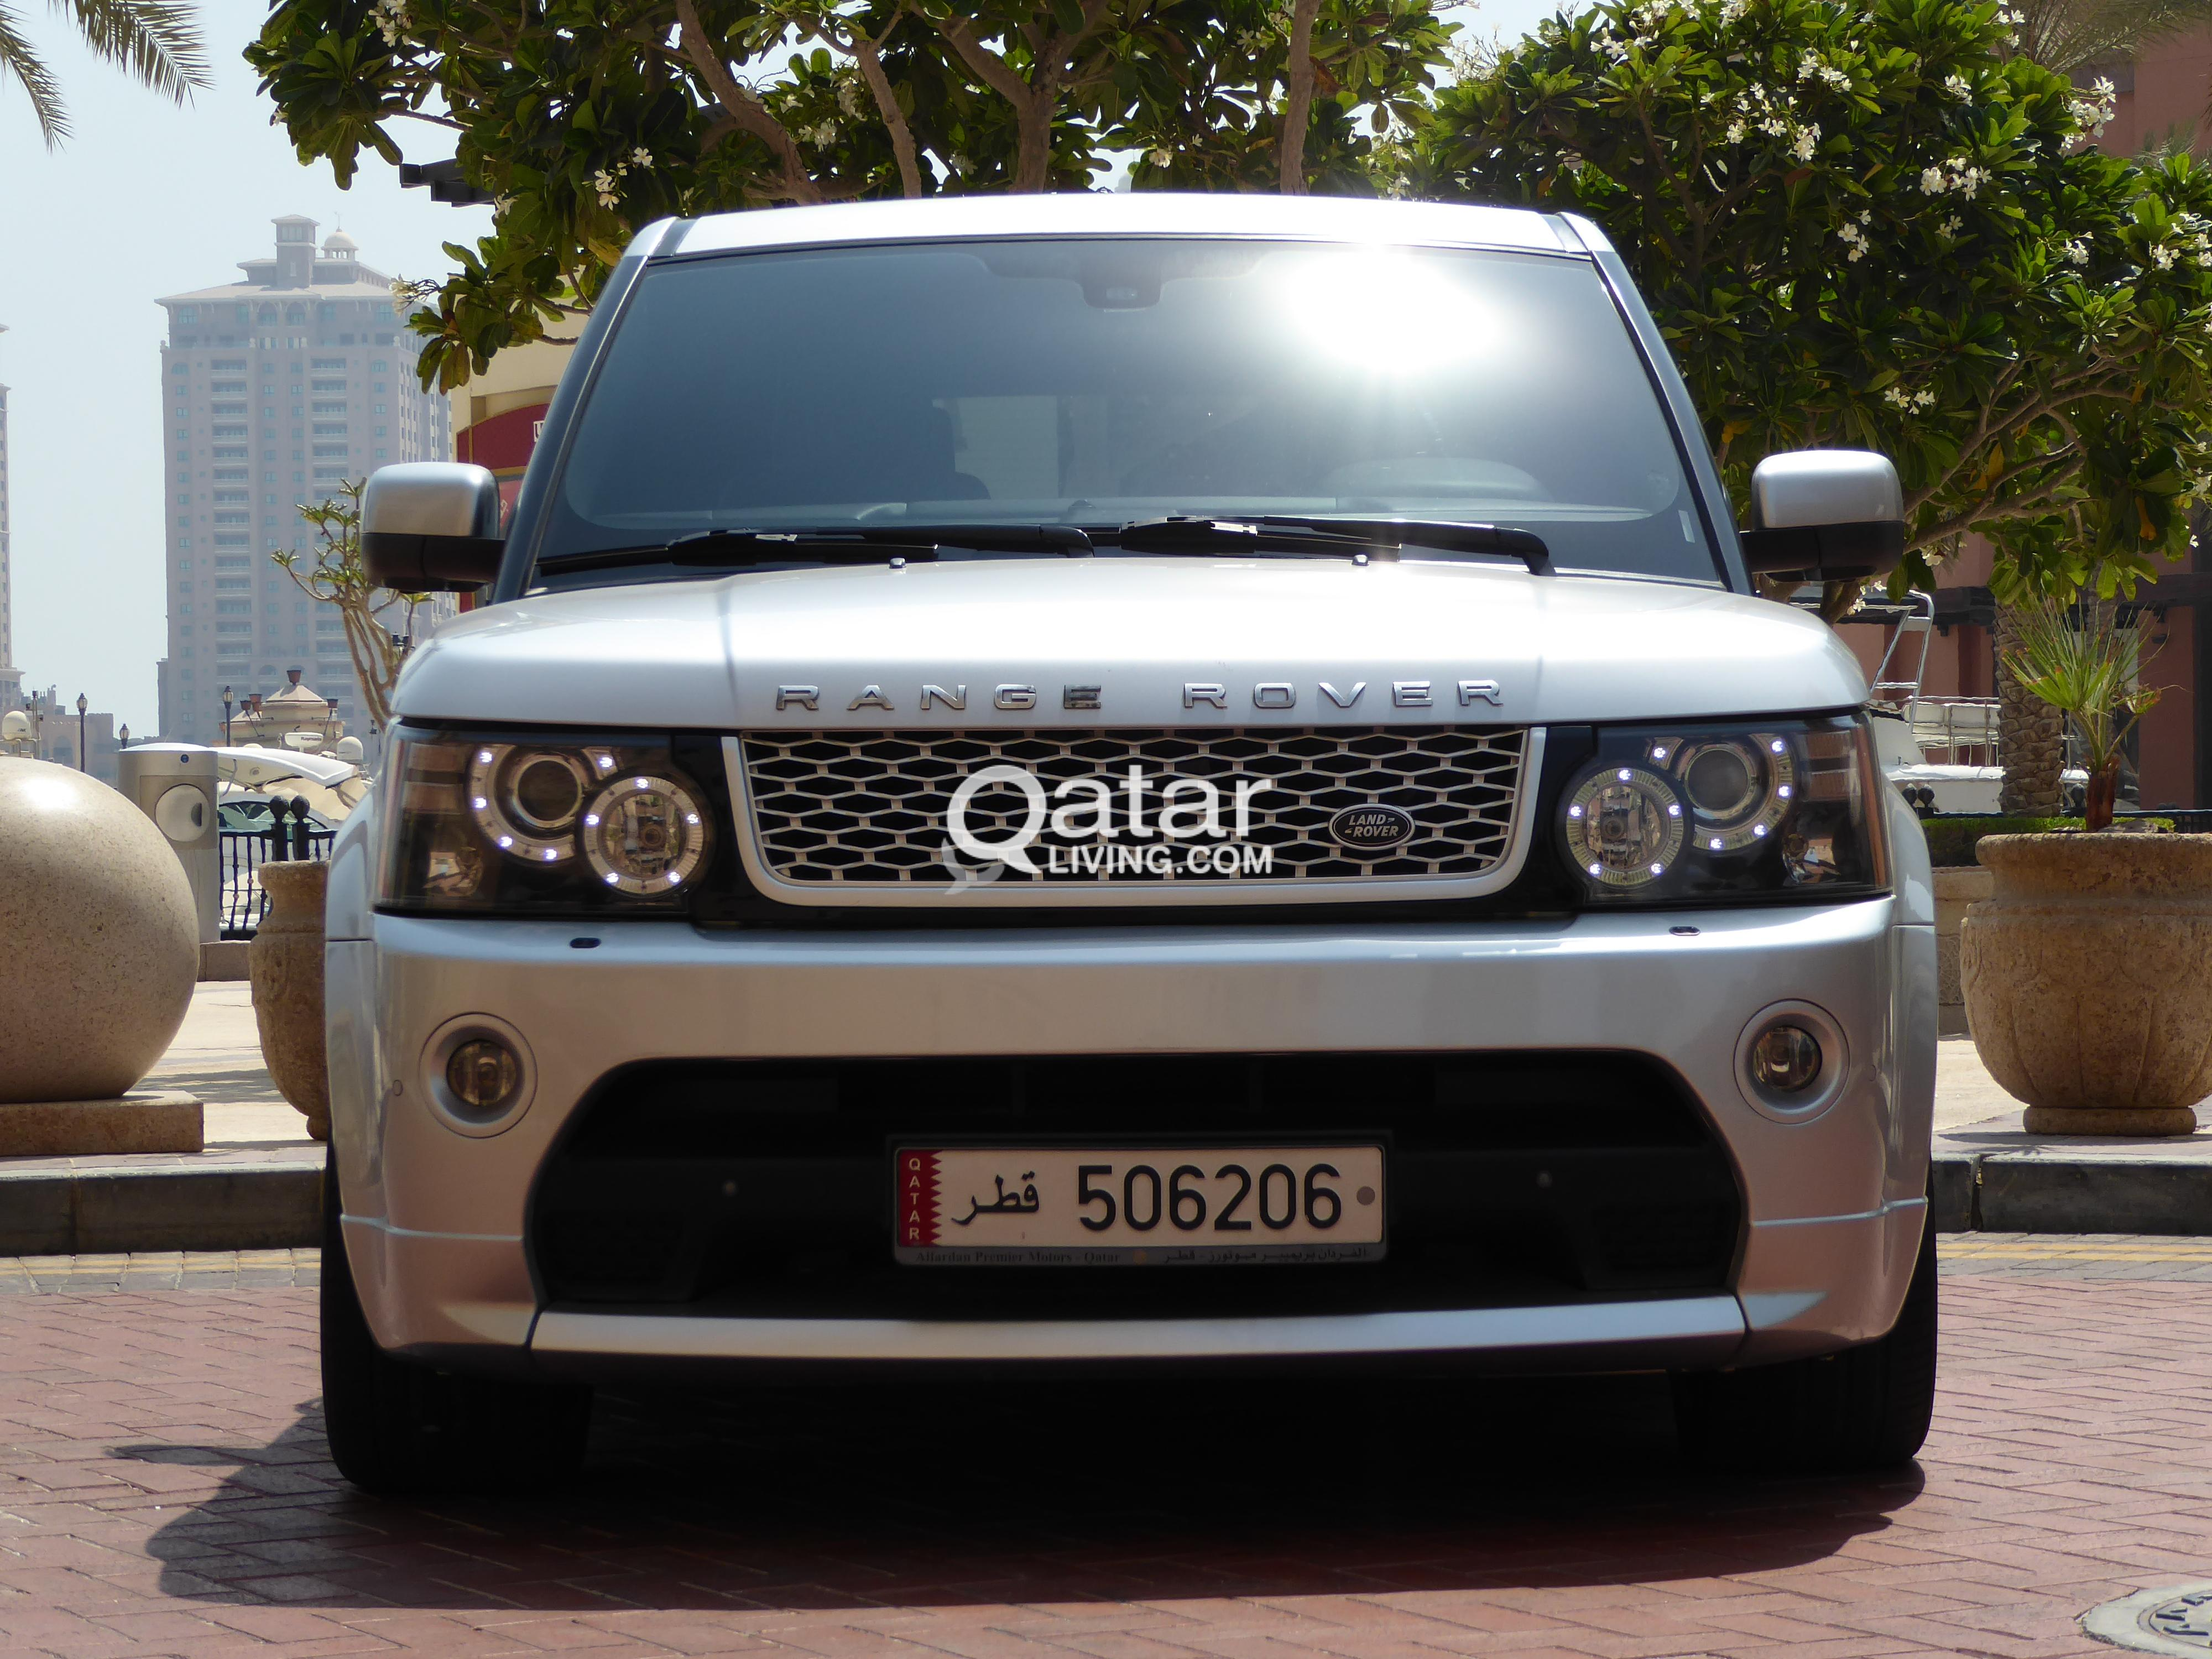 warranty sports utility land extension reviews suv cutout defender insurance landrover mpg carbuyer groups vehicle rover